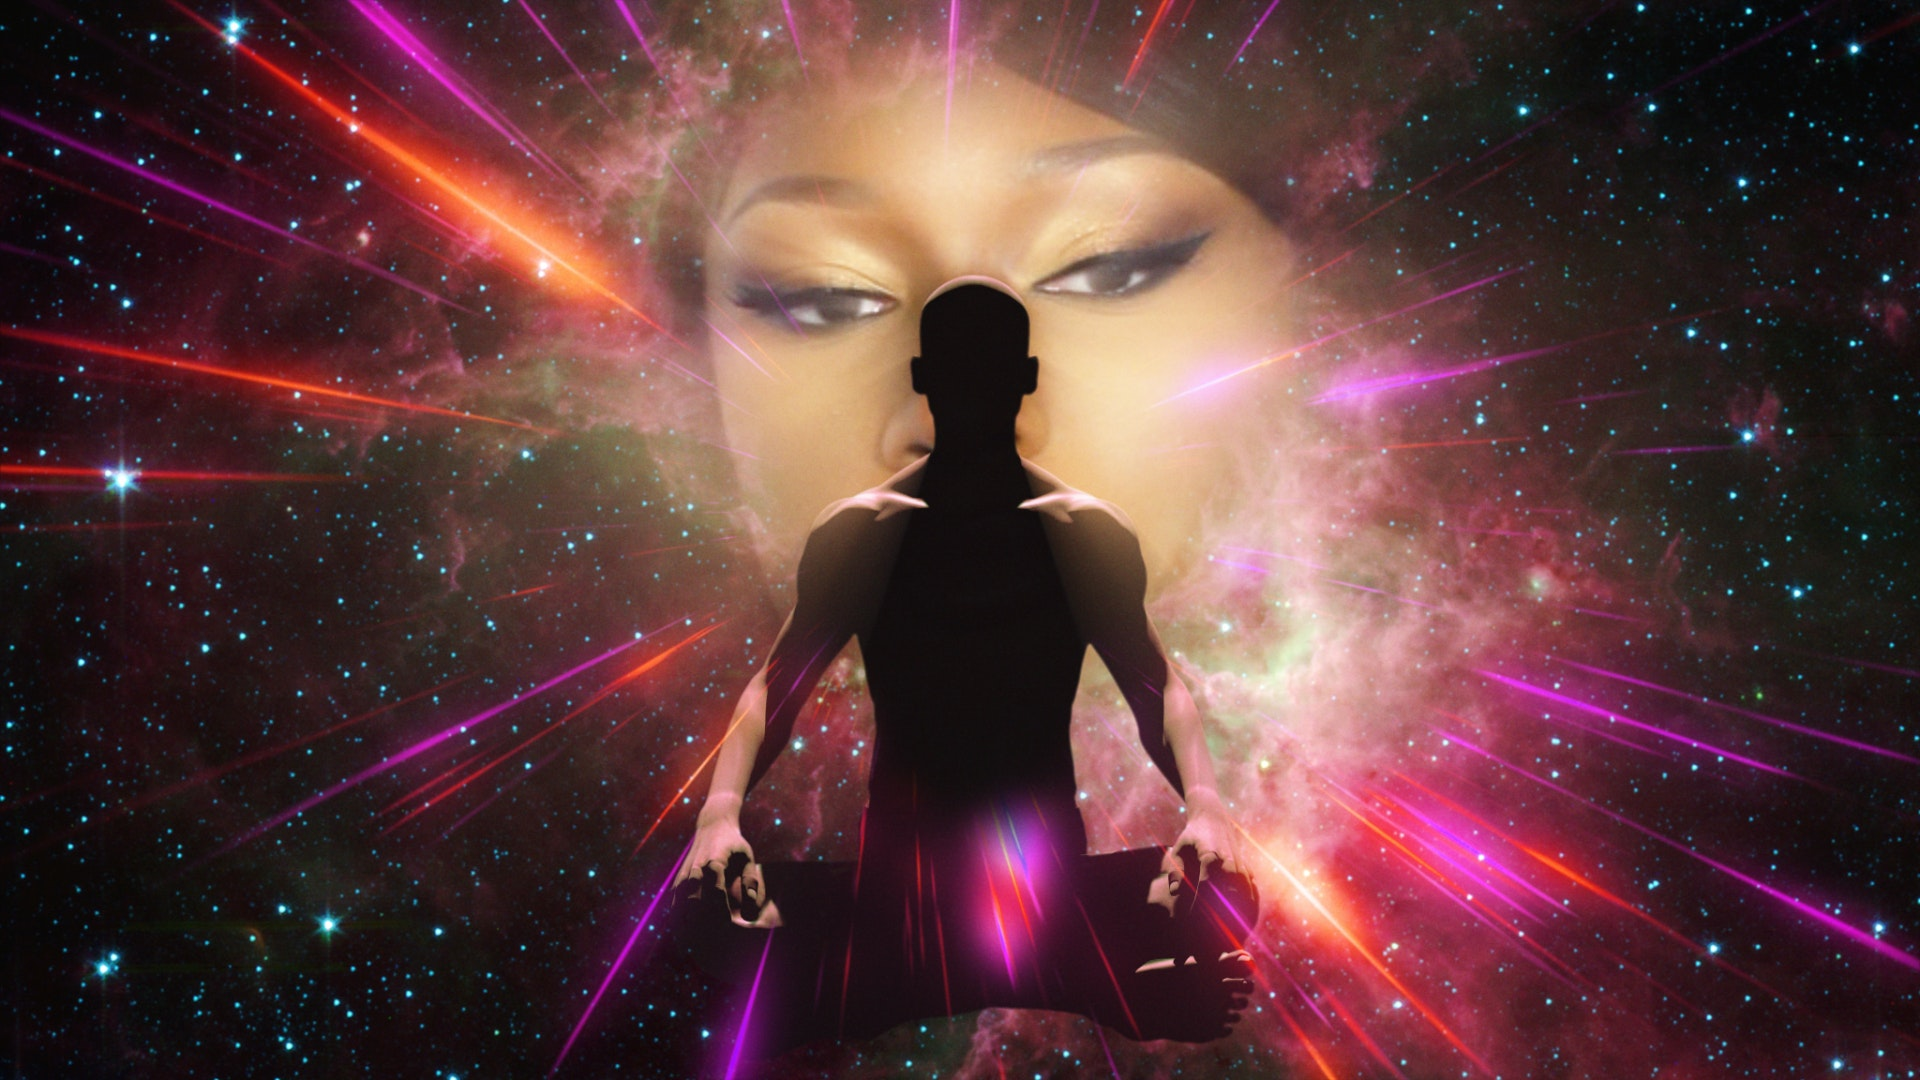 Ep. 1275 - The Great Truth I've Learned From Megan Thee Stallion